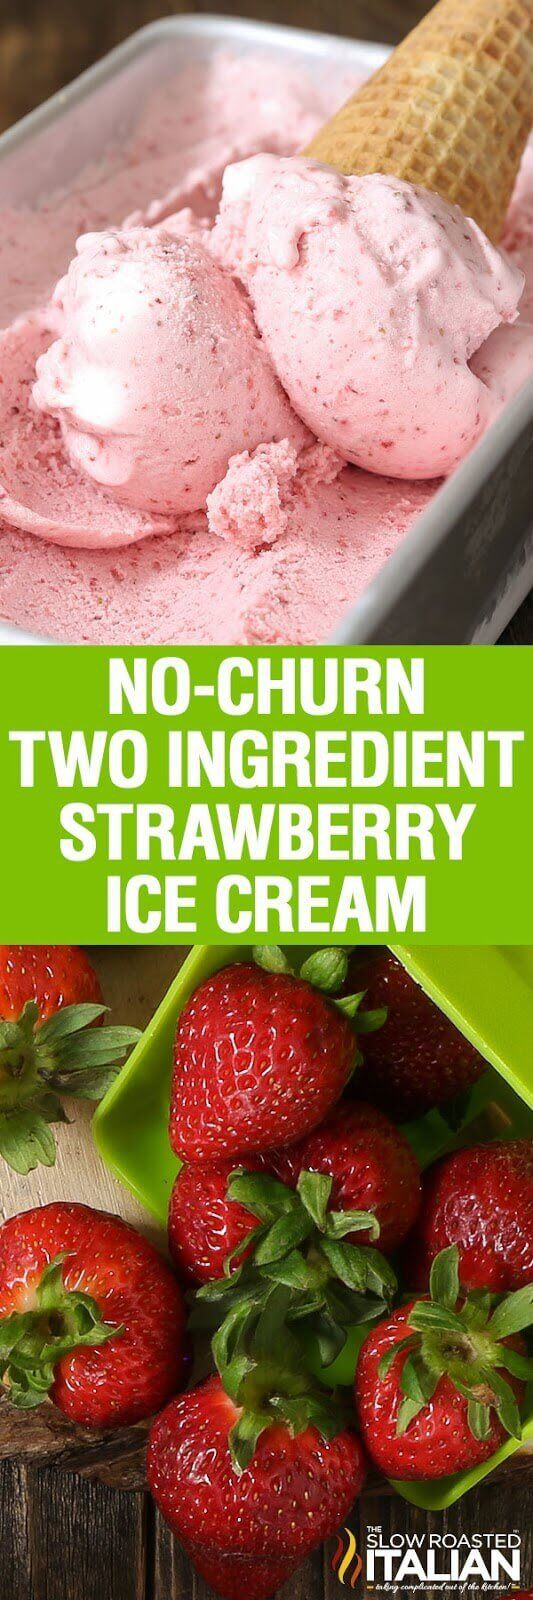 No-Churn 2 Ingredient Strawberry Ice Cream